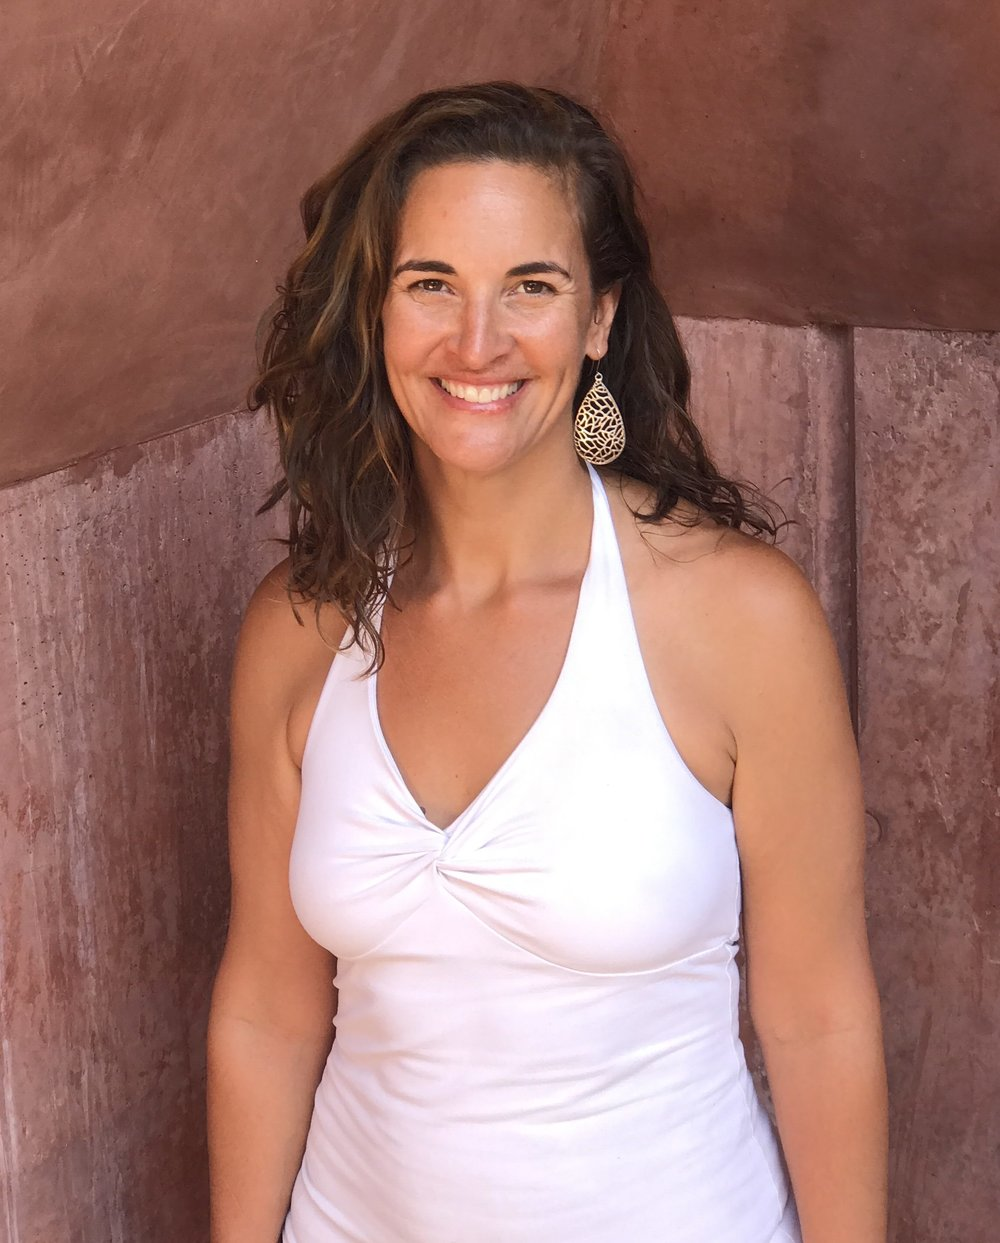 - On this episode of She's All That, we talked with Rachel Peters, who runs www.easefullivingcommunity.com.  According to Rachel, easeful living means living according to rhythms that expand our sense of time, allowing us to be more effective with a lot less stress. We talk with Rachel about her path from yoga instructor to easeful living maven, why she's so inspired by yoga and Ayurveda, and ways we can start living more easefully right now.